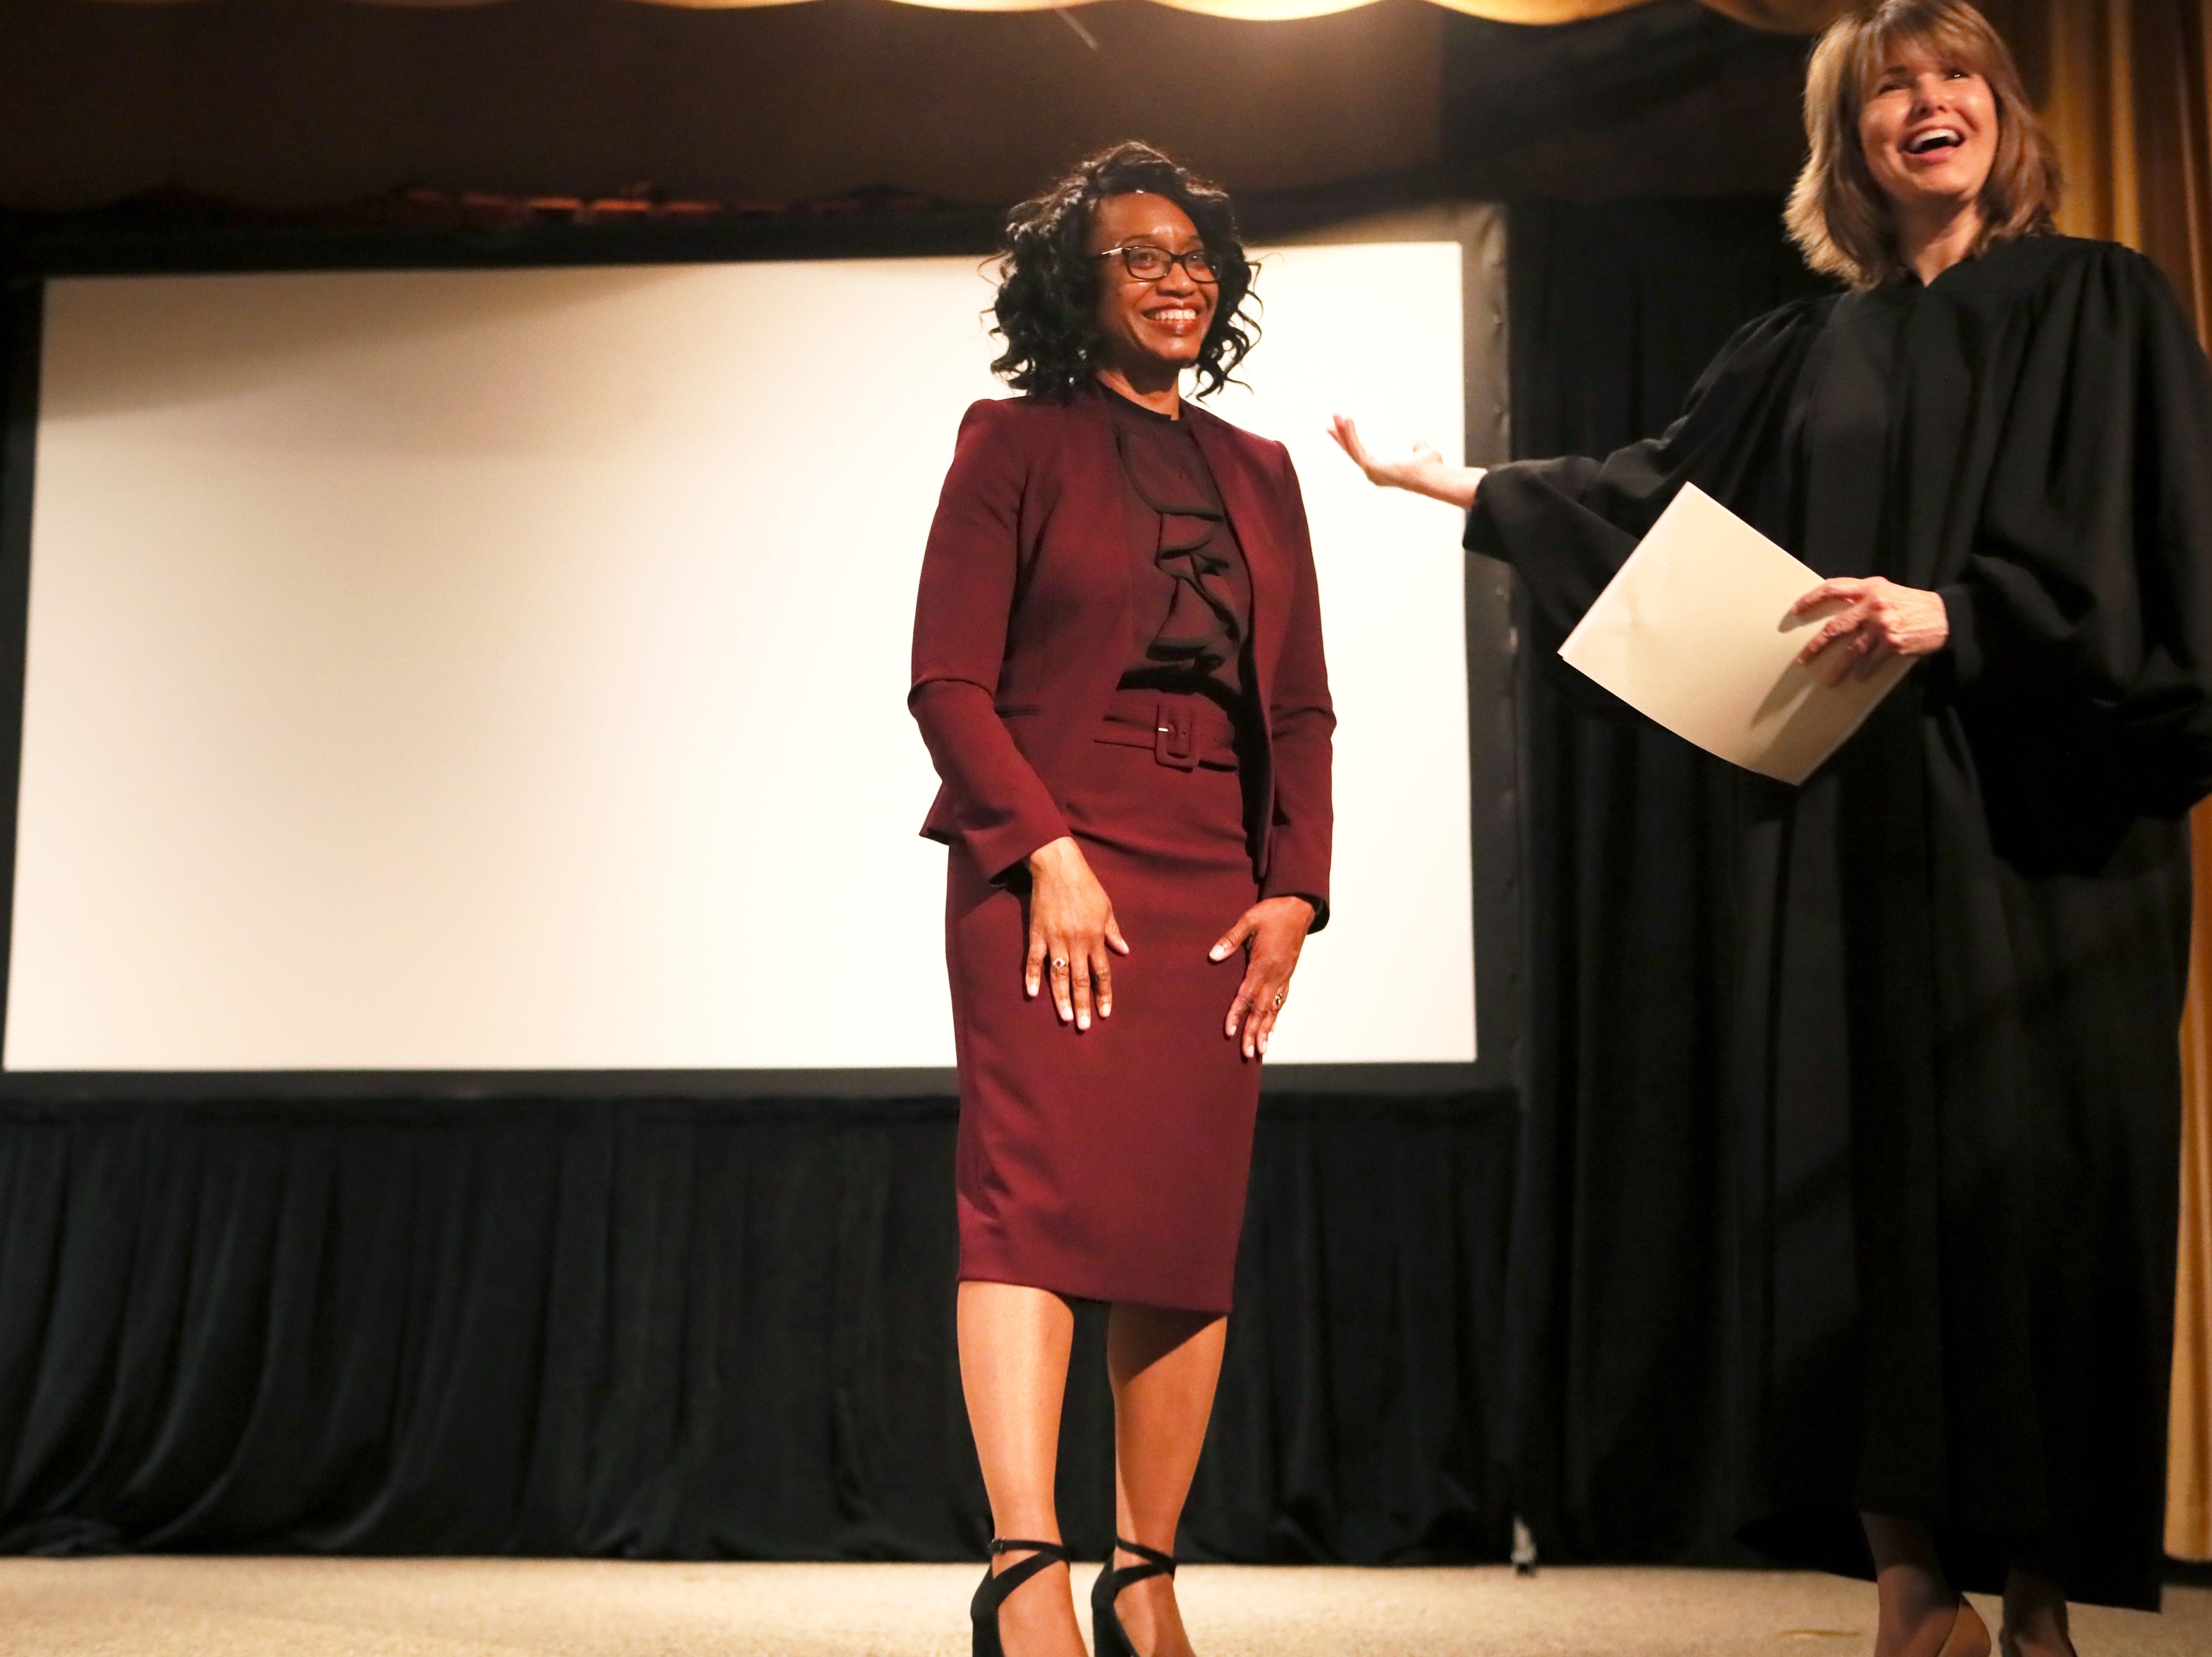 Justice of the Tennessee Supreme Court Holly Kirby officially introduces Phyllis Aluko after being sworn in as Shelby County's first female chief public defender at the Walter L. Bailey, Jr. Criminal Justice Center on Tuesday, April 16, 2019.